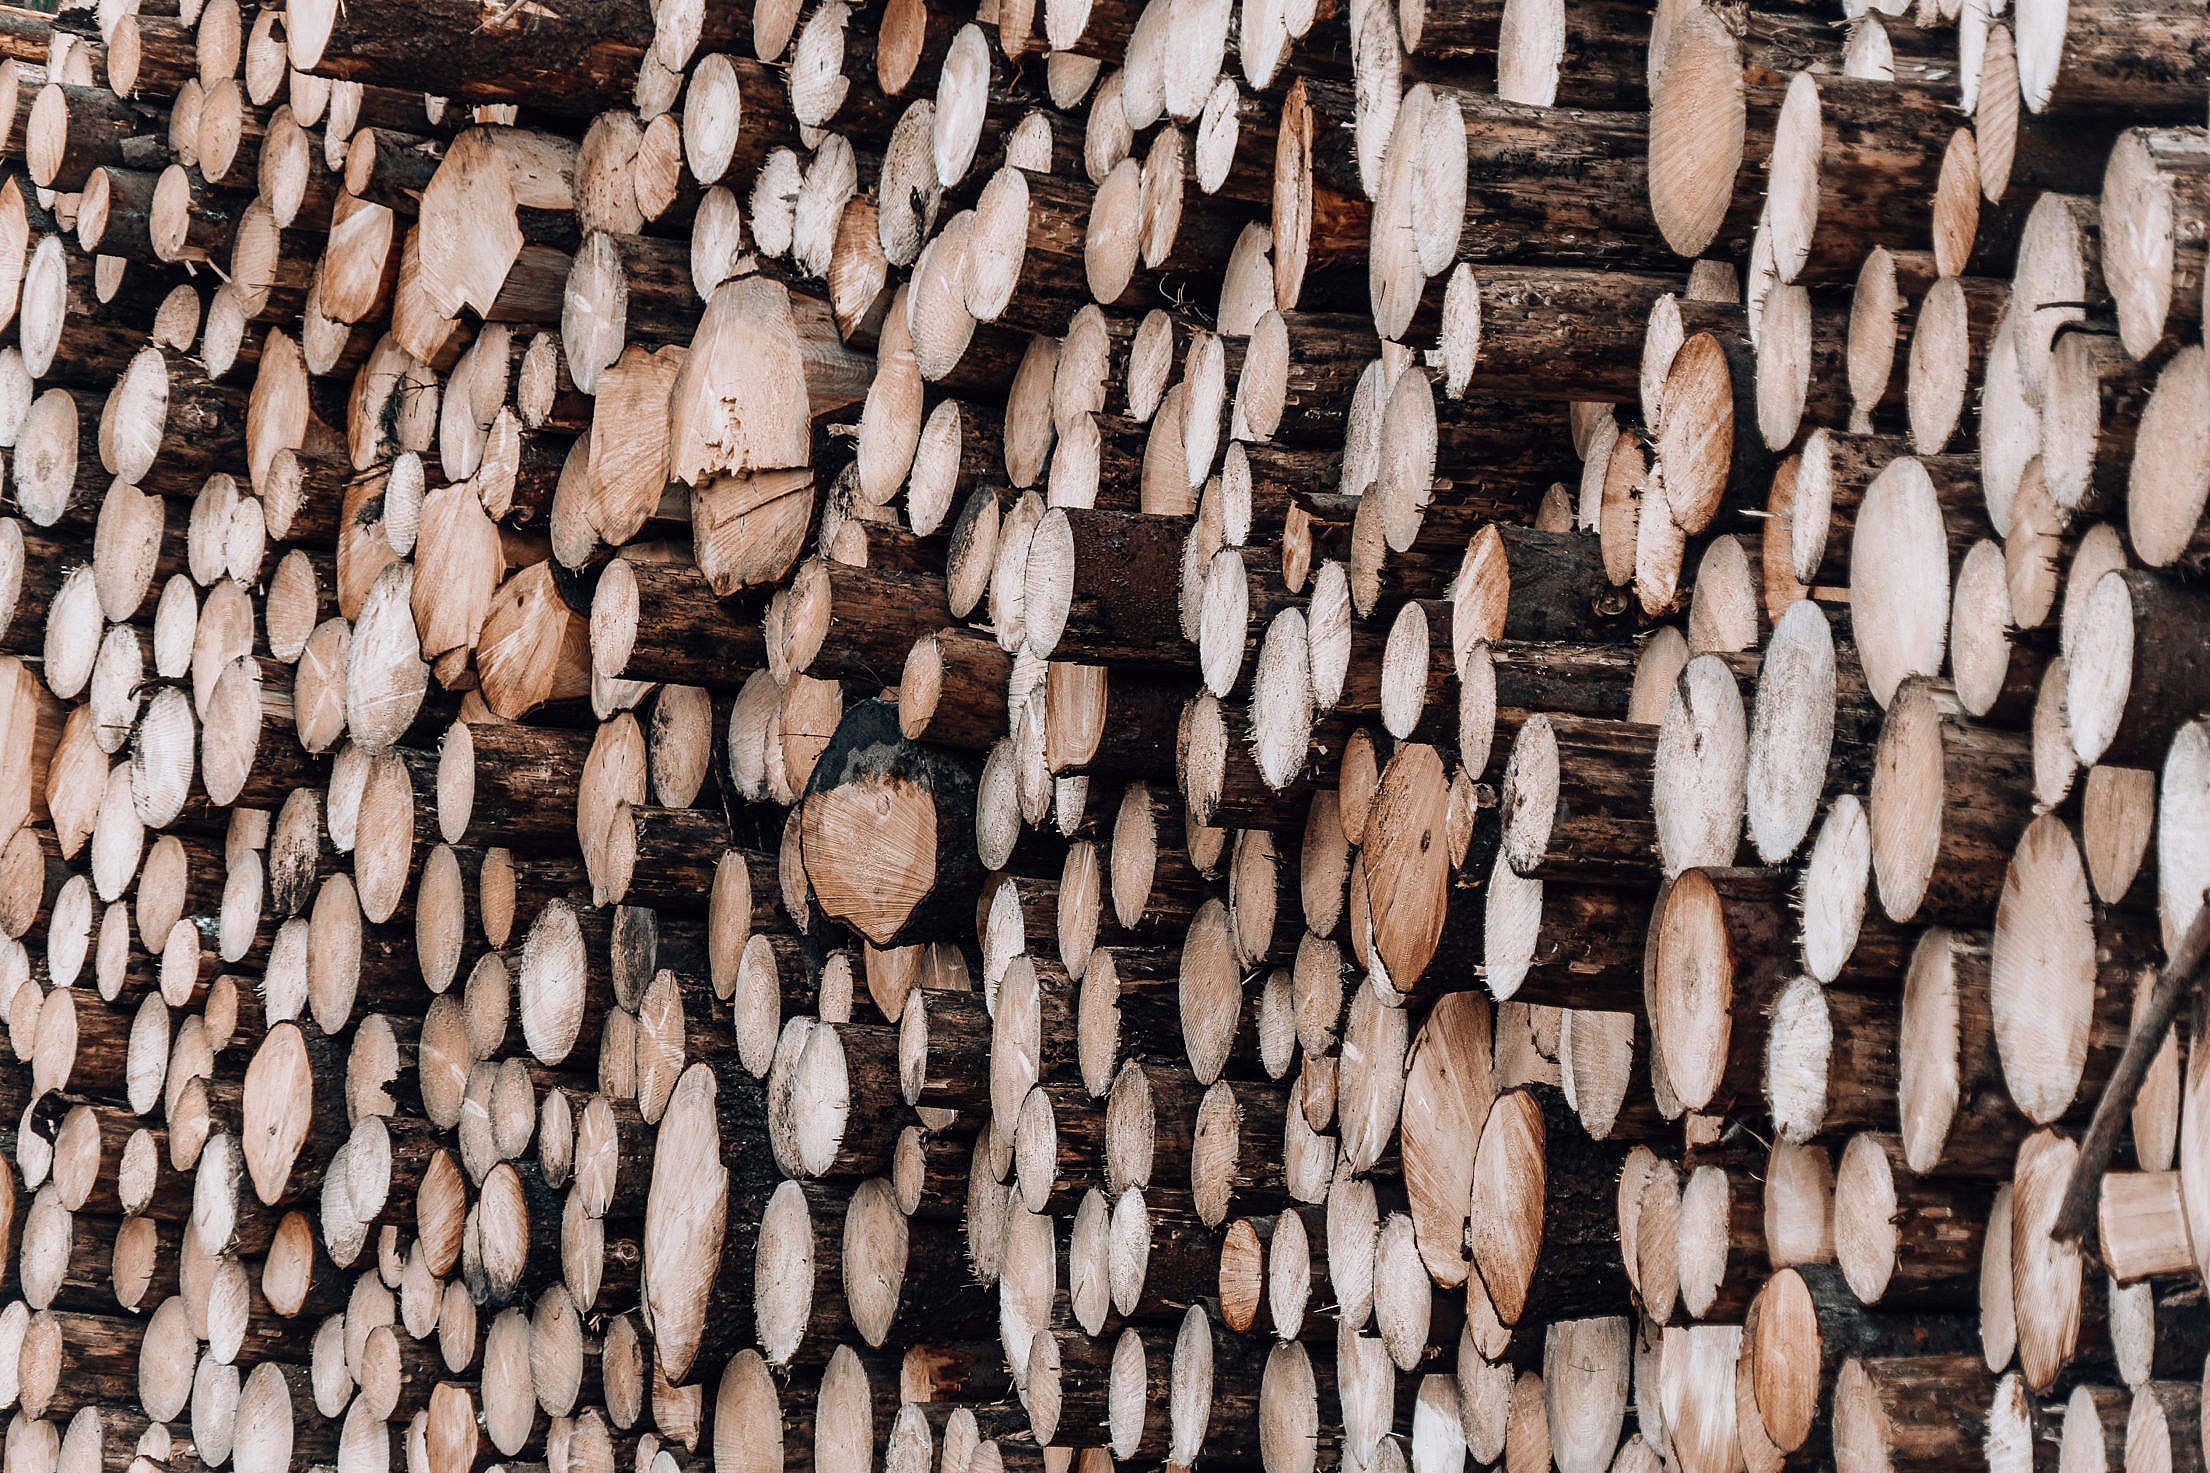 Download Pile of Wood Logs Free Stock Photo